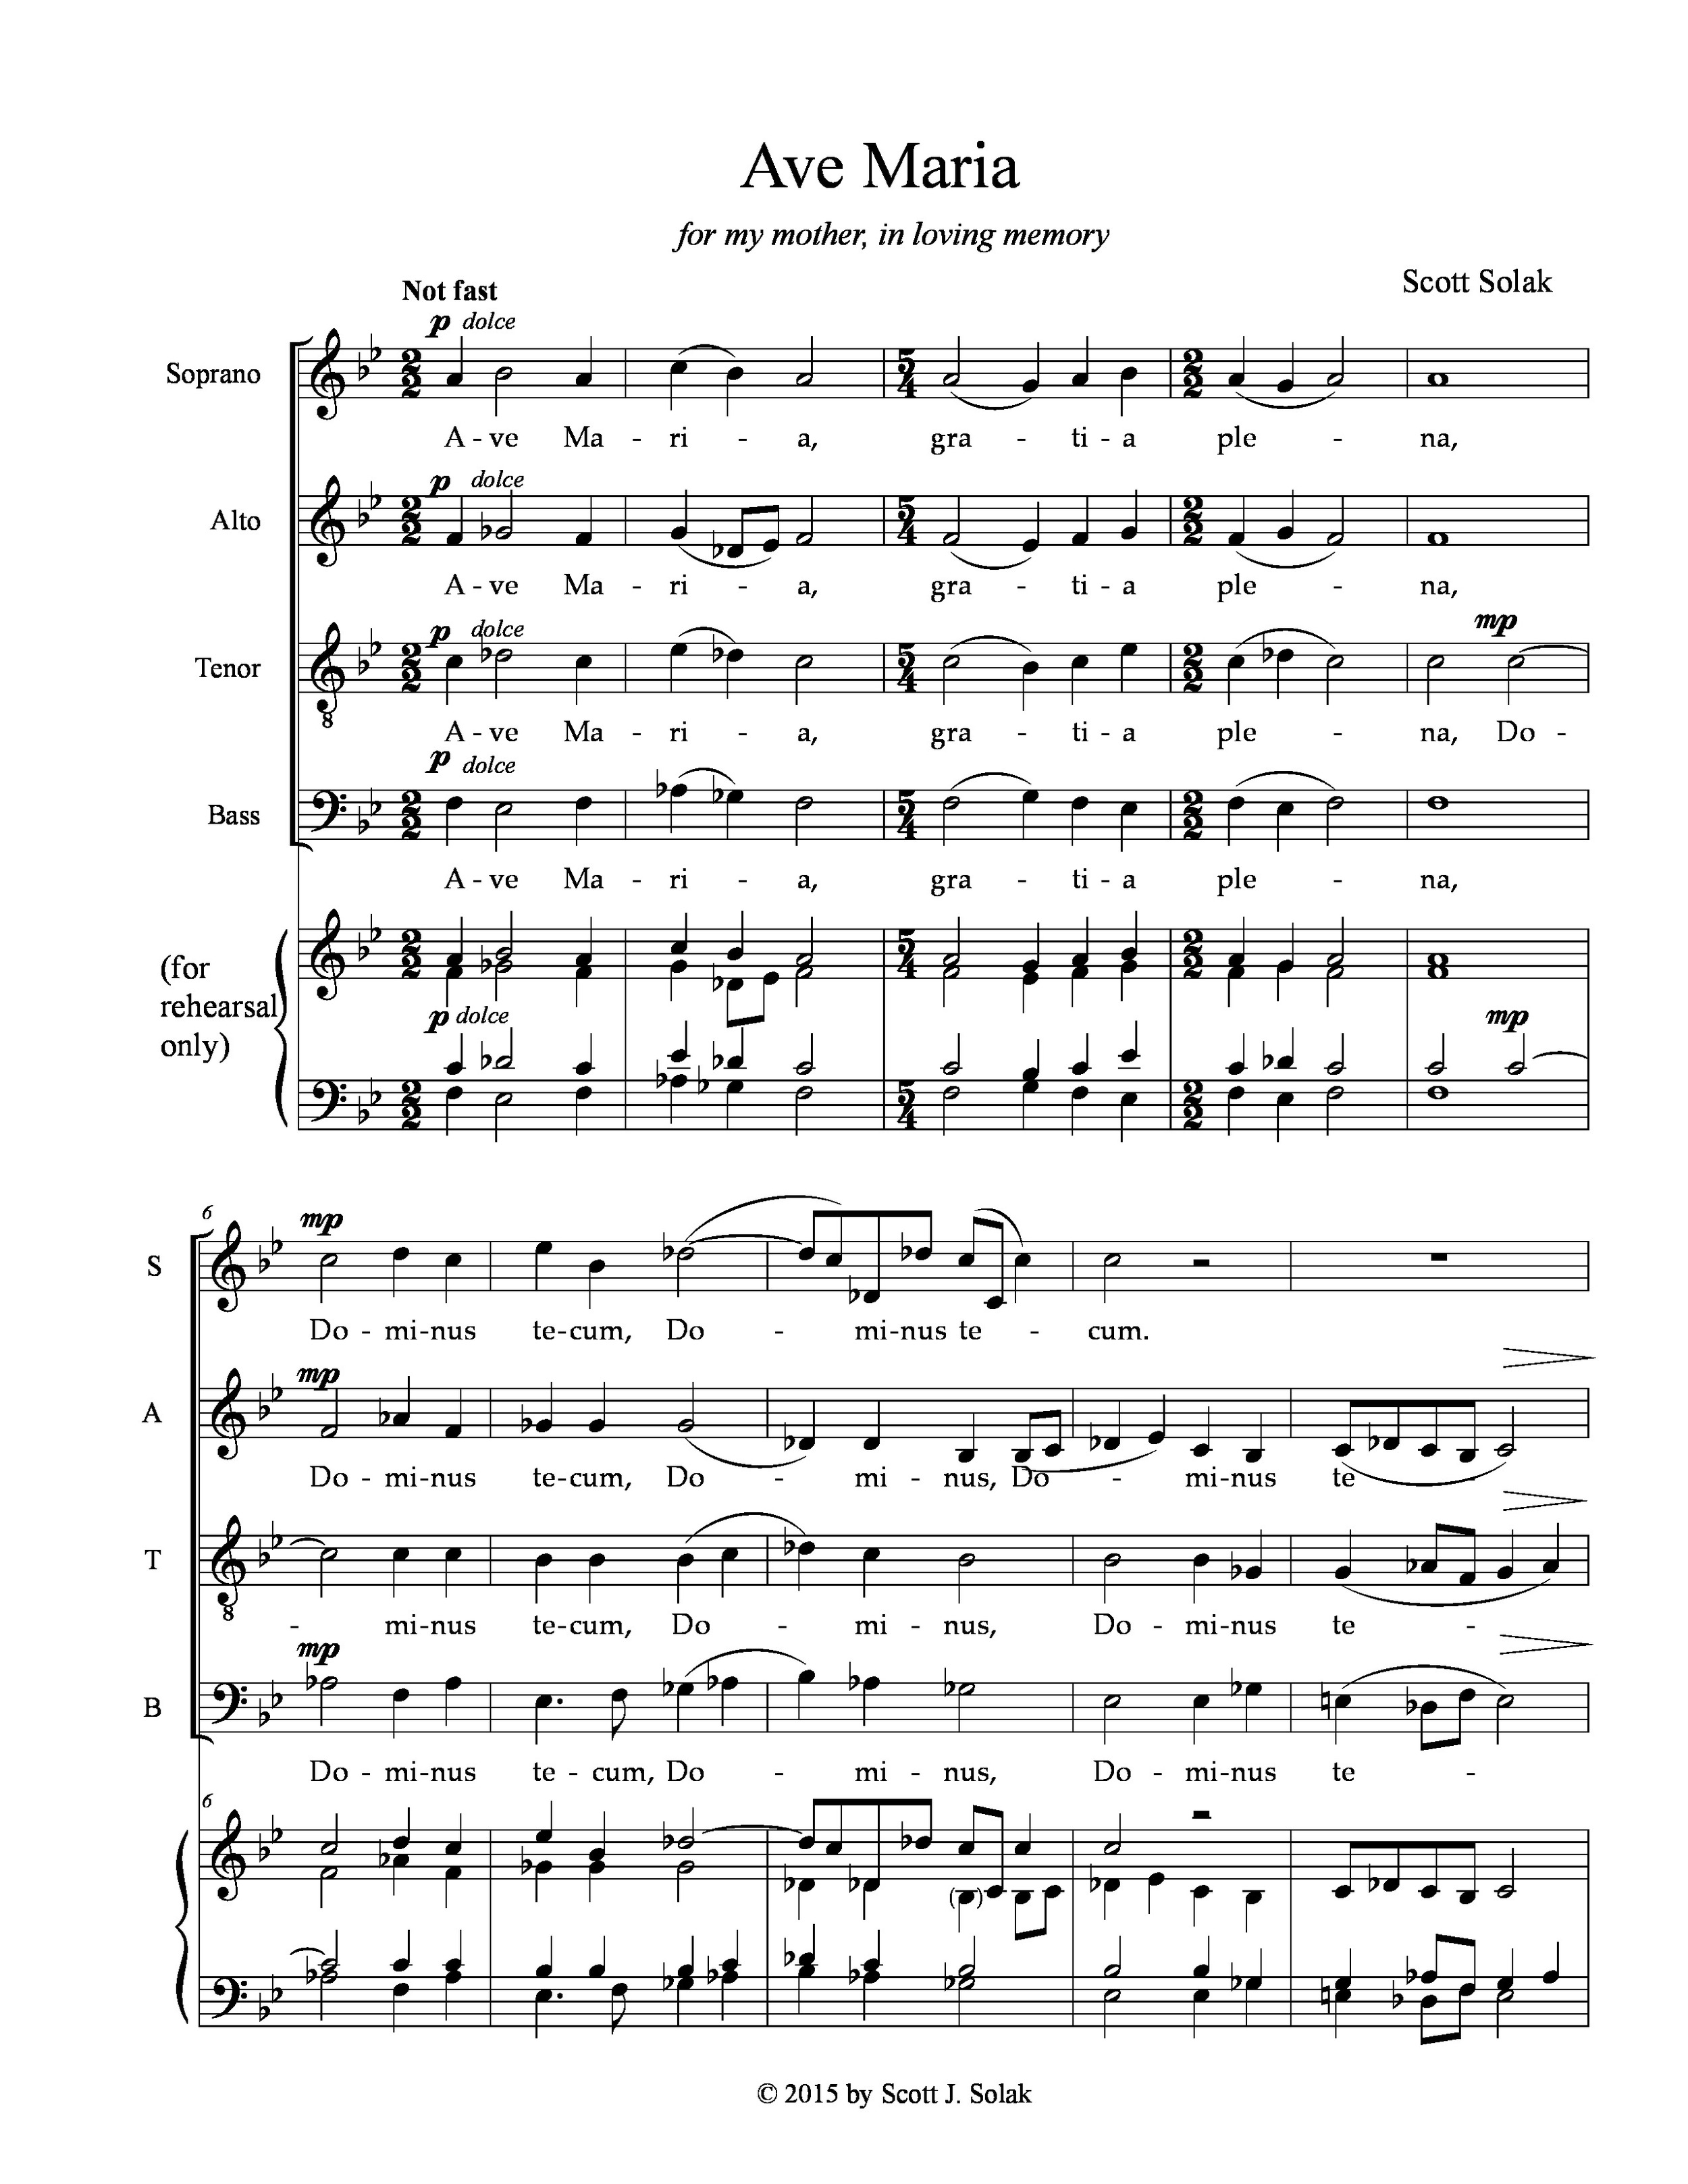 Ave Maria final-page-0.jpg